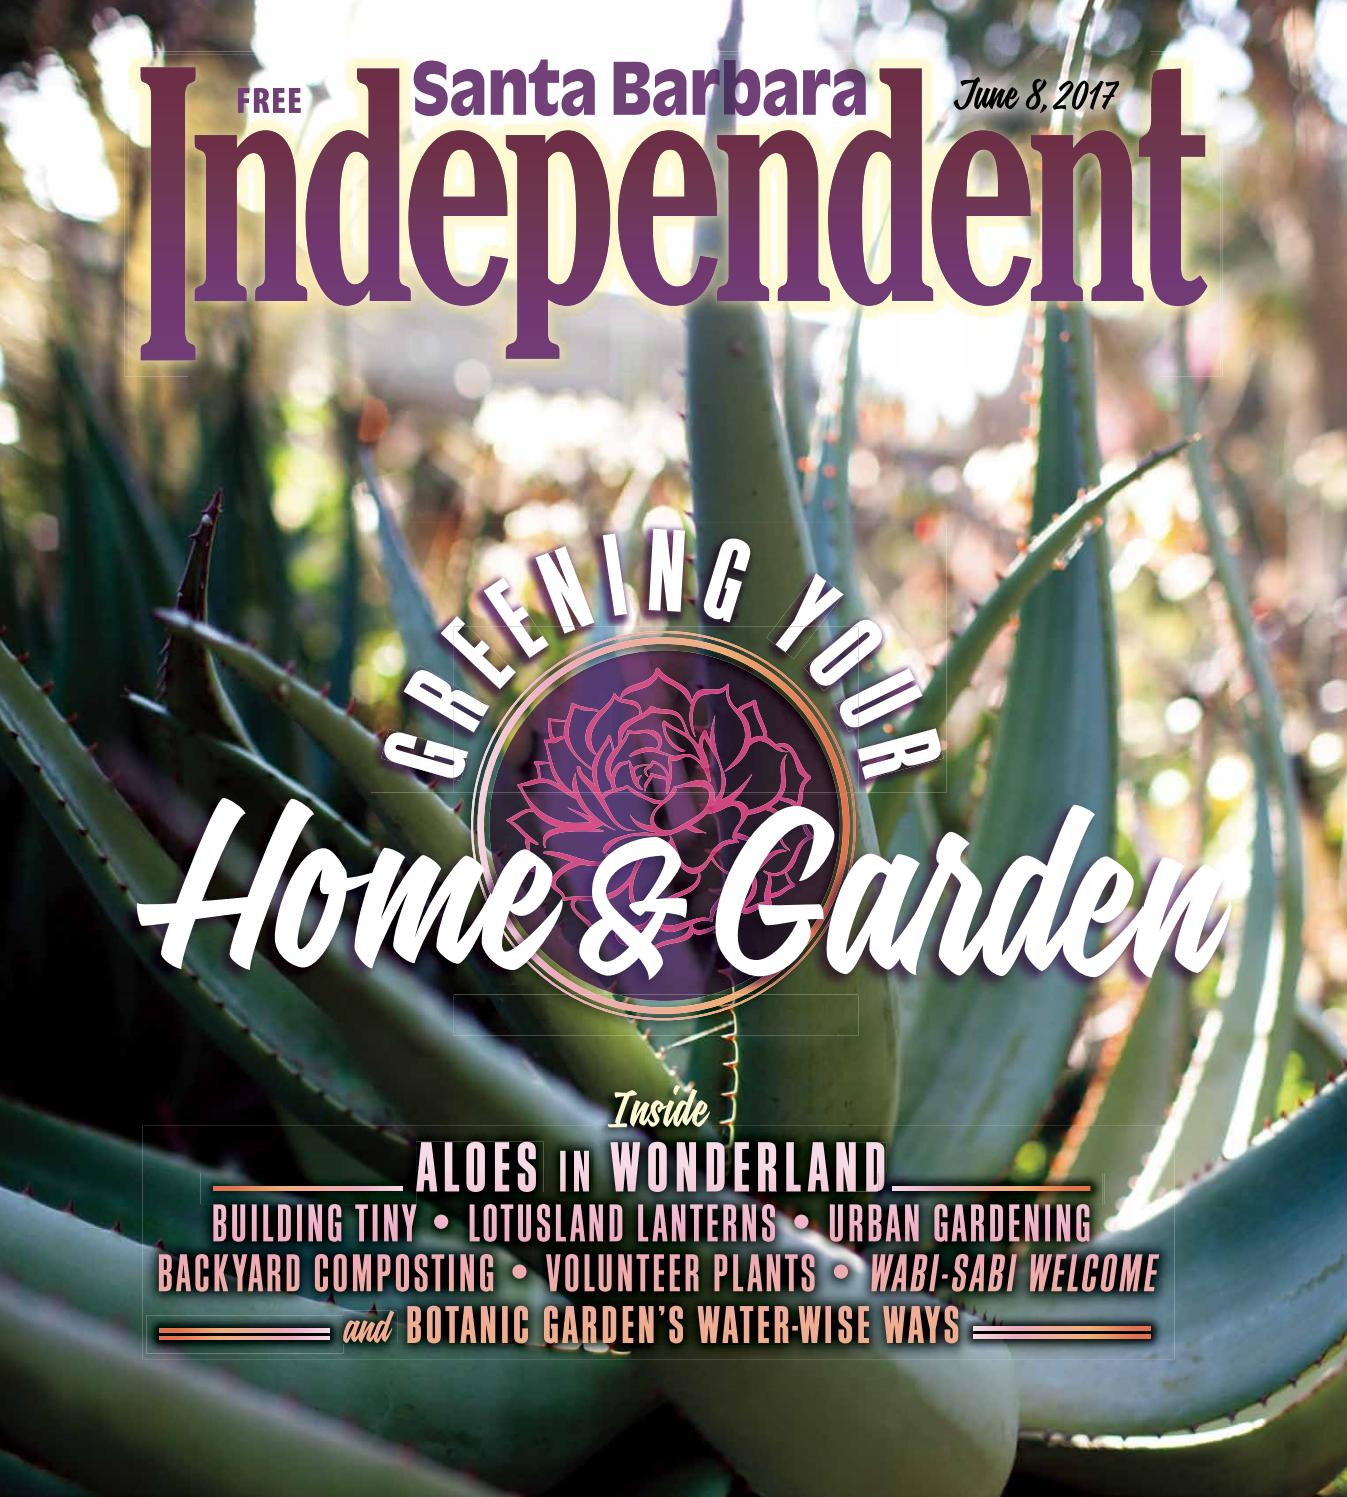 Santa Babara Independent Home And Garden Guide, 06/08/17 By SB Independent    Issuu